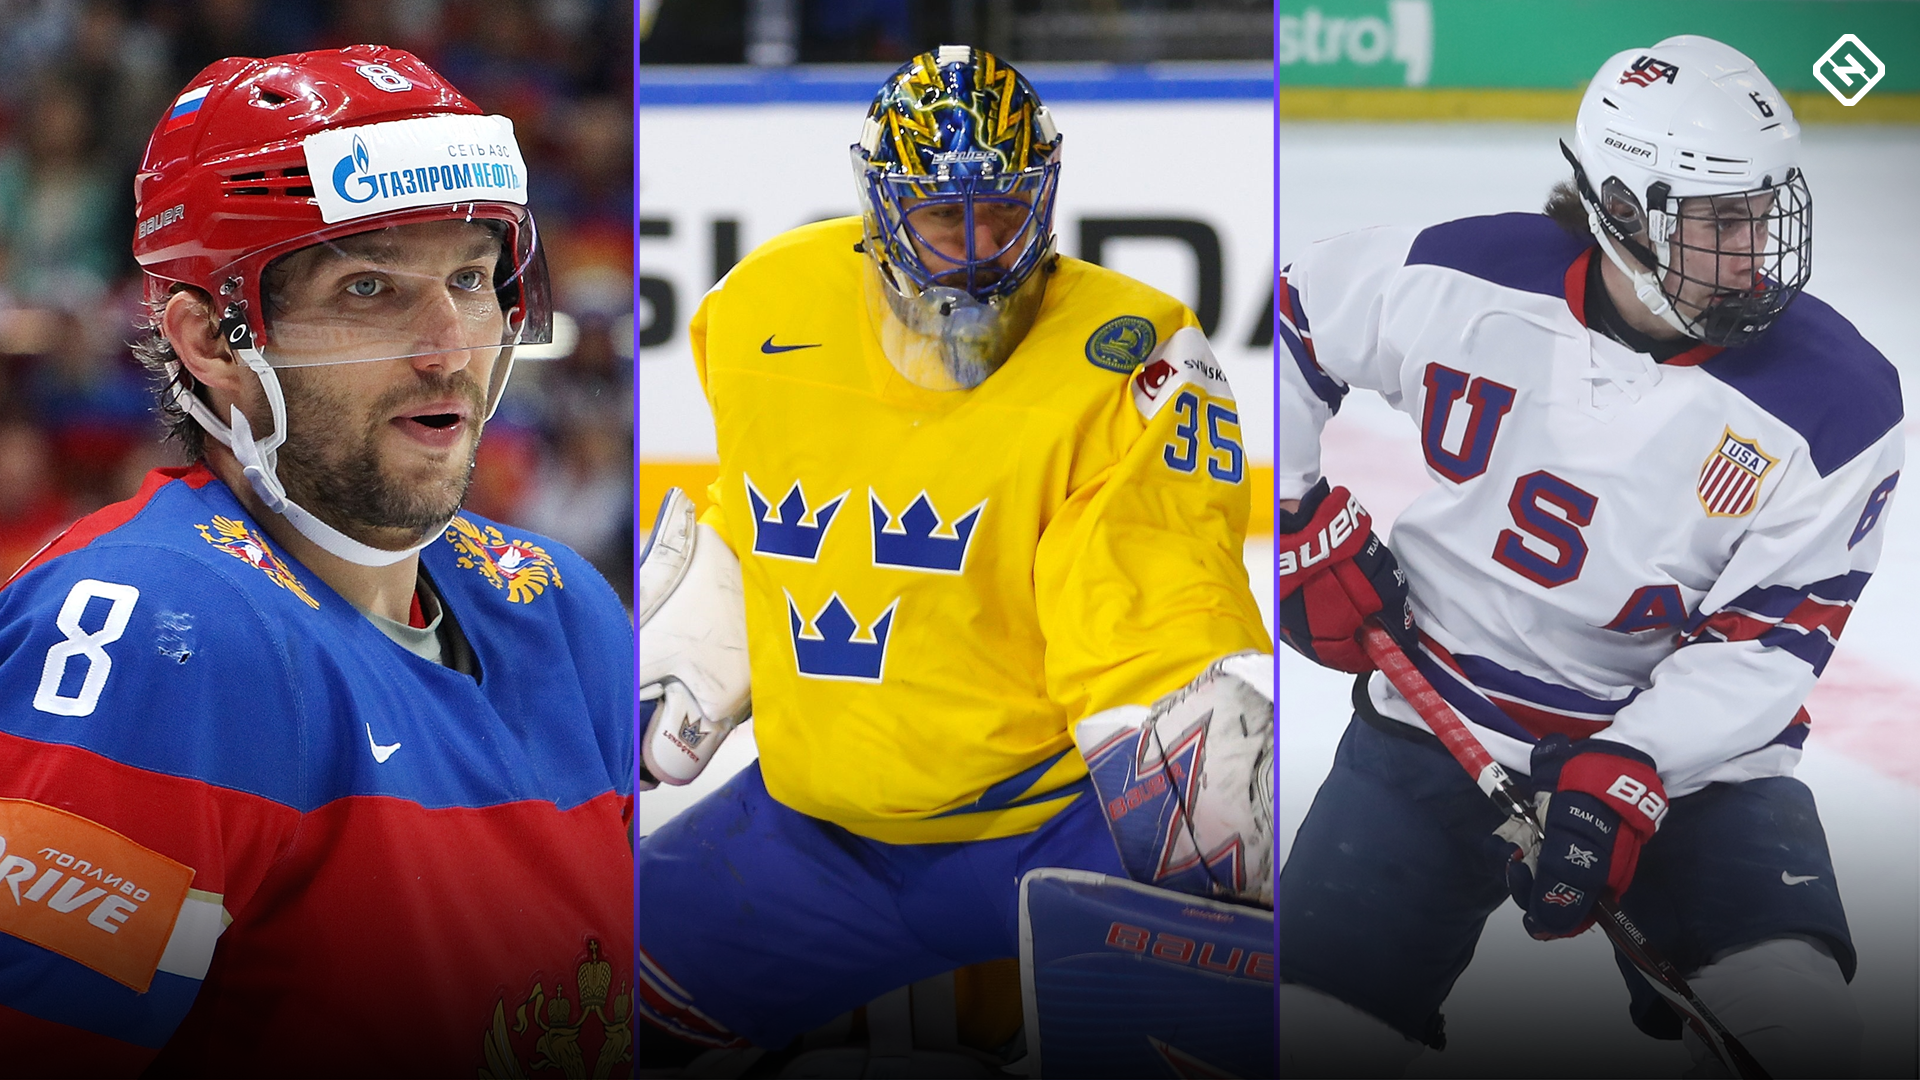 2019 iihf world hockey championship rosters